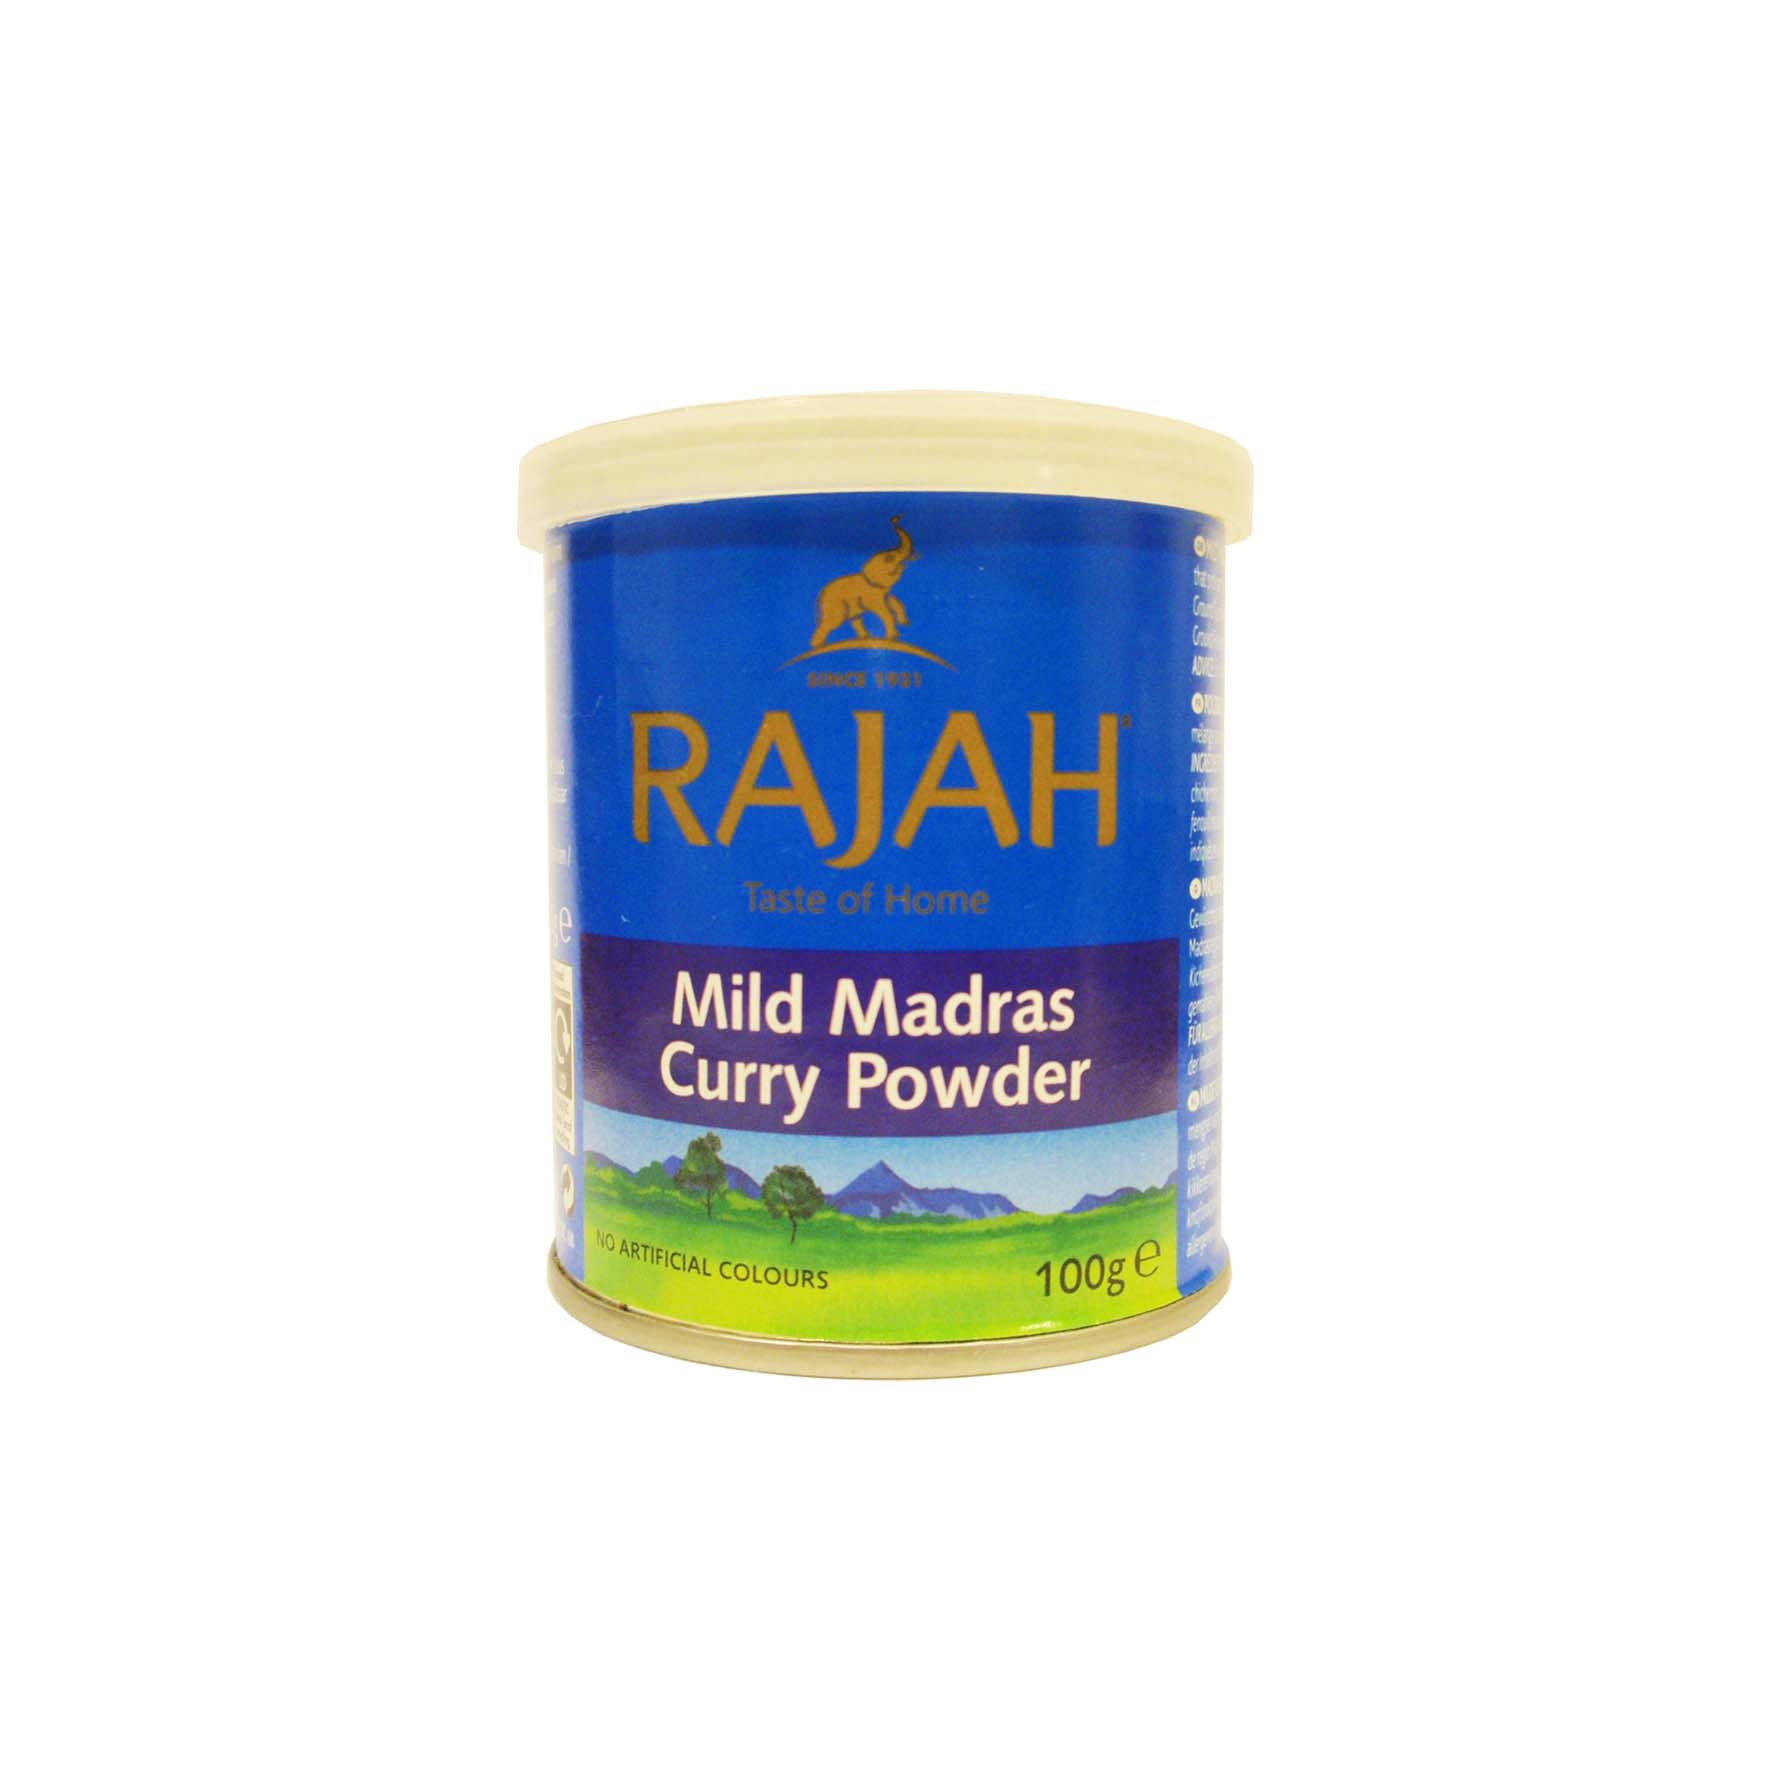 Rajah curry polvo suave madras